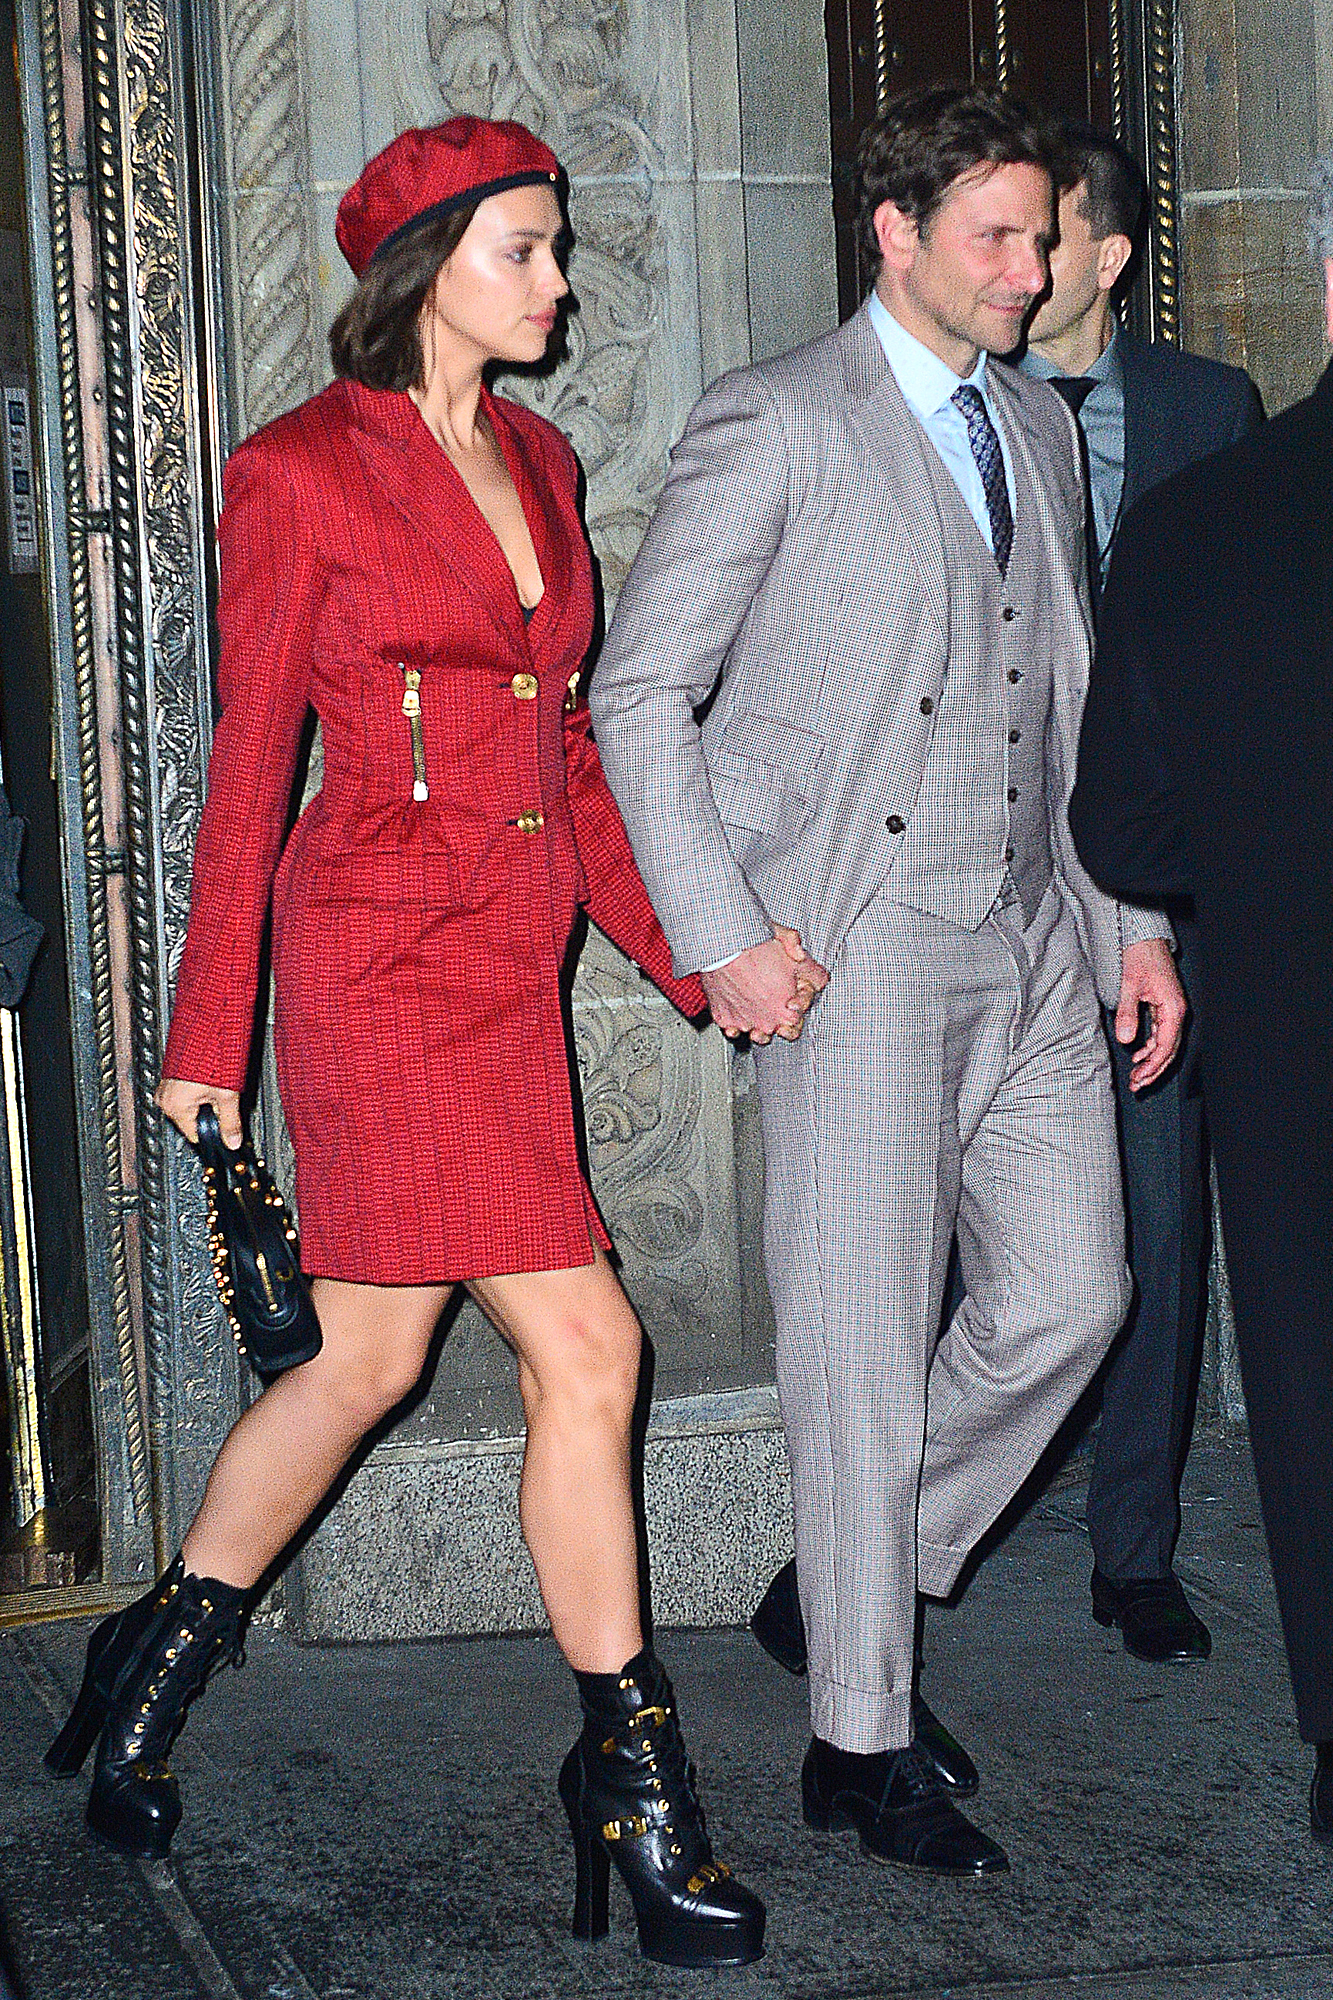 Bradley Cooper and Irina Shayk hold hands as they leave the National Board of Review Awards in NYC